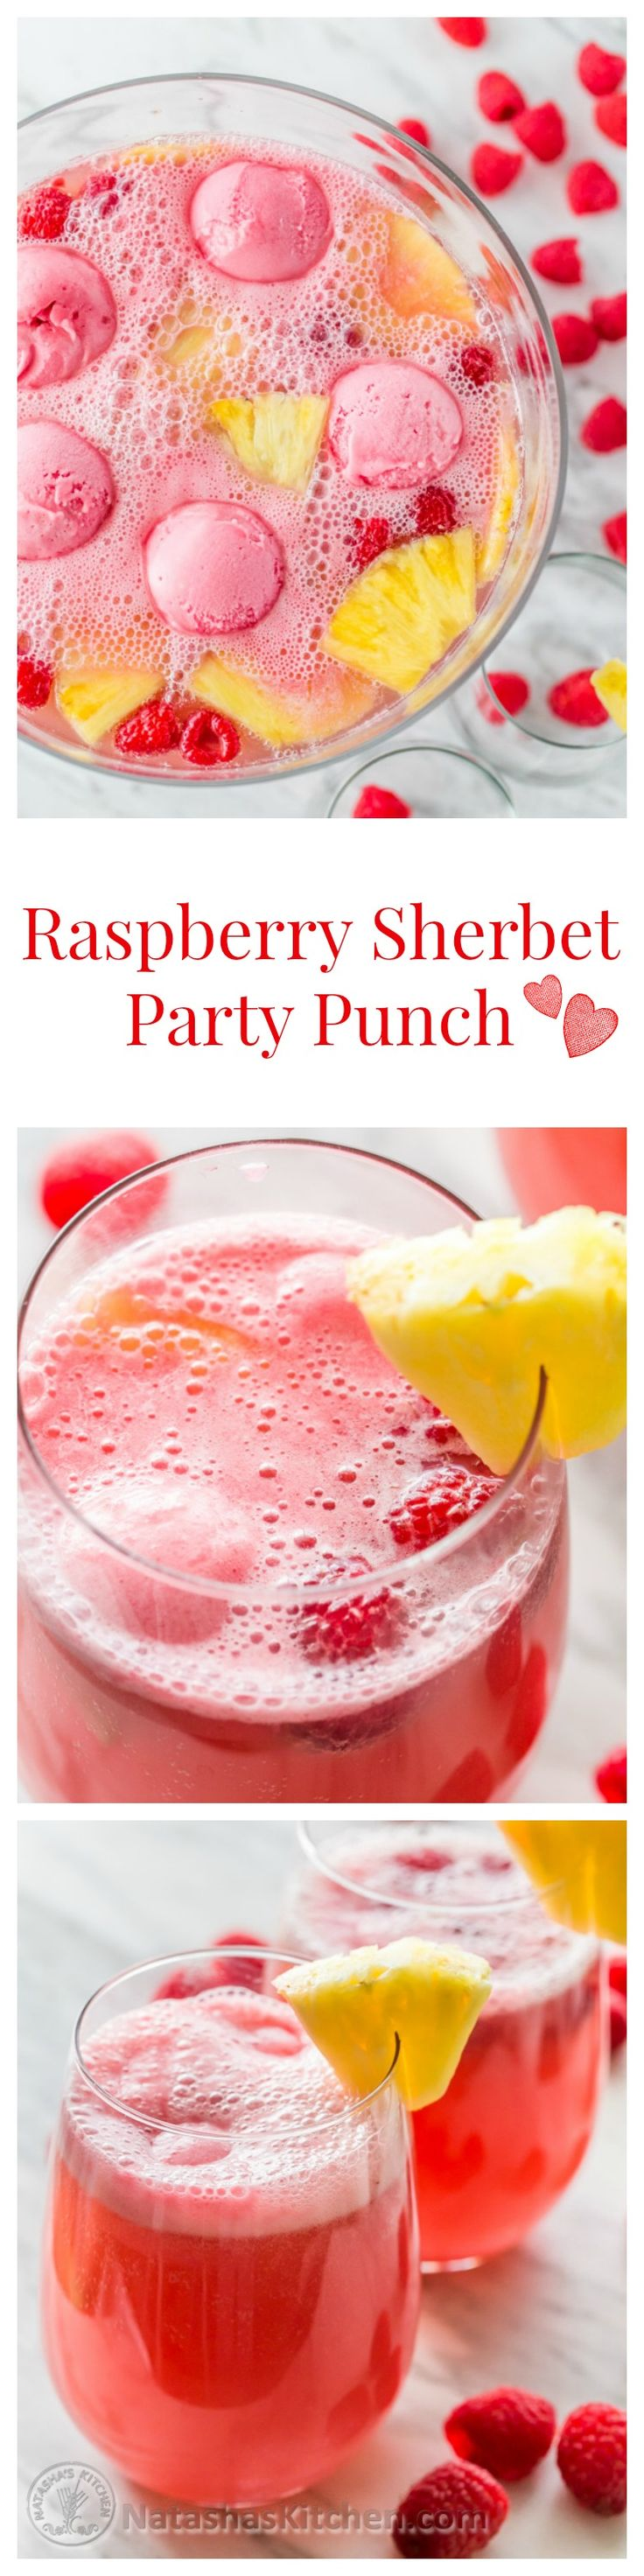 This Sherbet Party Punch is perfect for potlucks, baby showers & bridal showers! @natashaskitchen